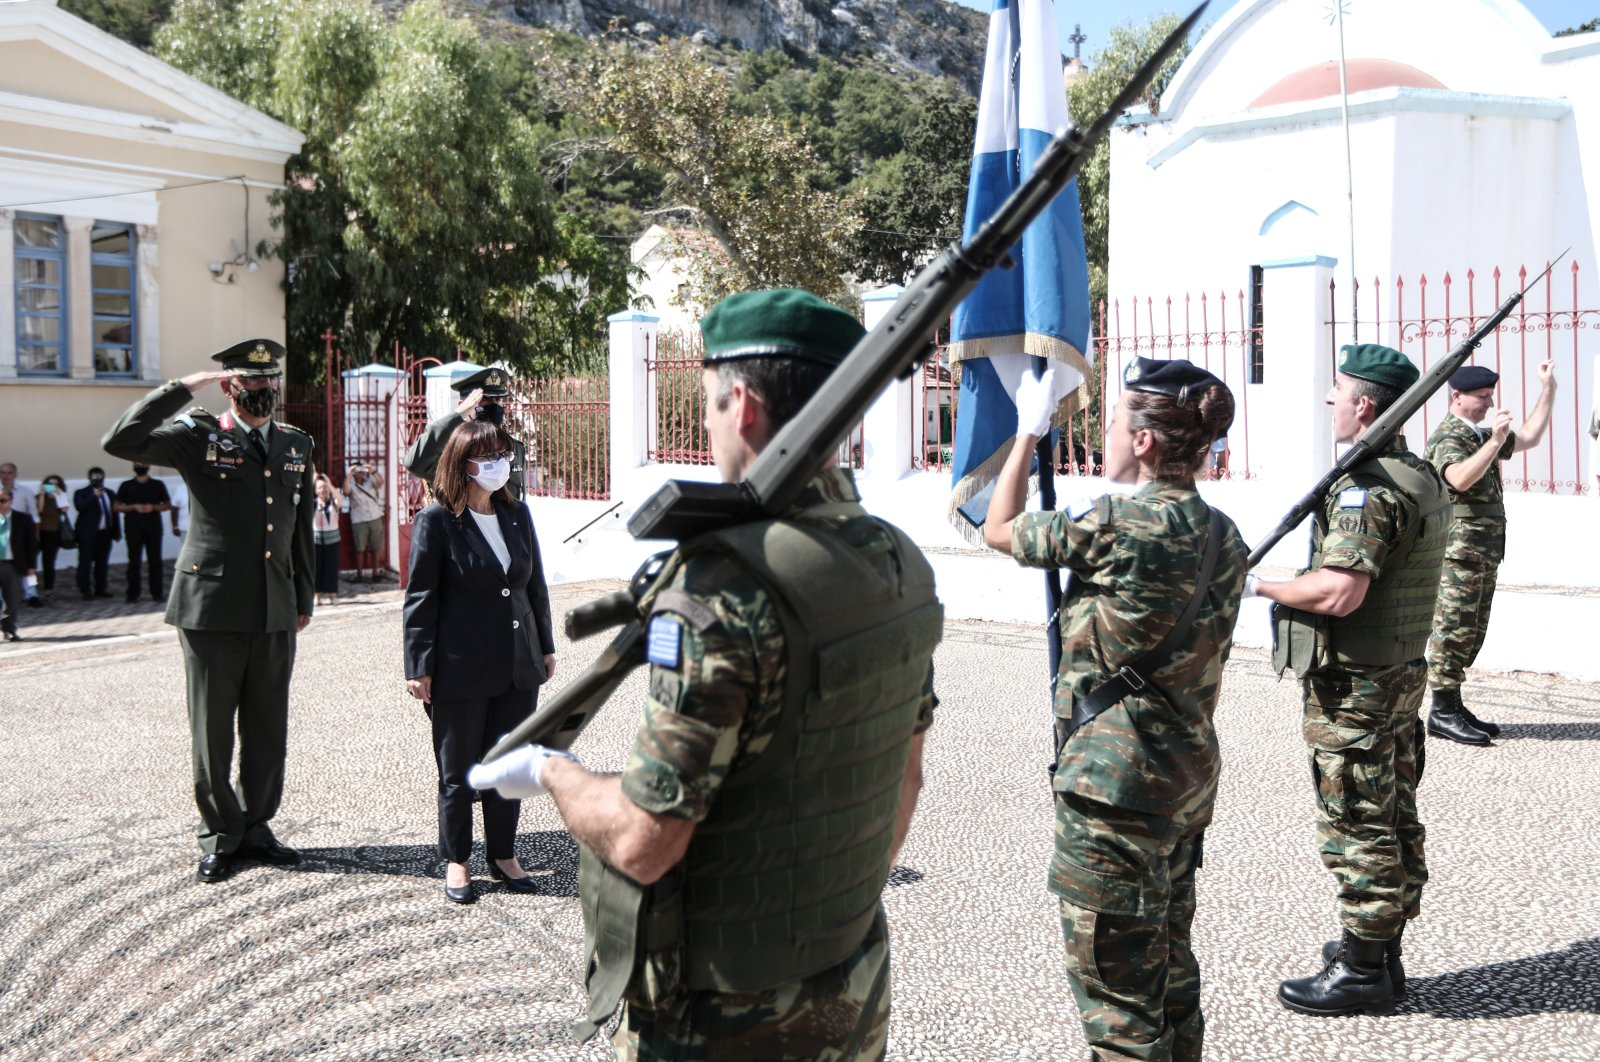 Greek President Katerina Sakellaropoulou inspects a guard of honor during a visit to the island of Kastellorizo, Greece, Sept. 13, 2020. (Reuters Photo)